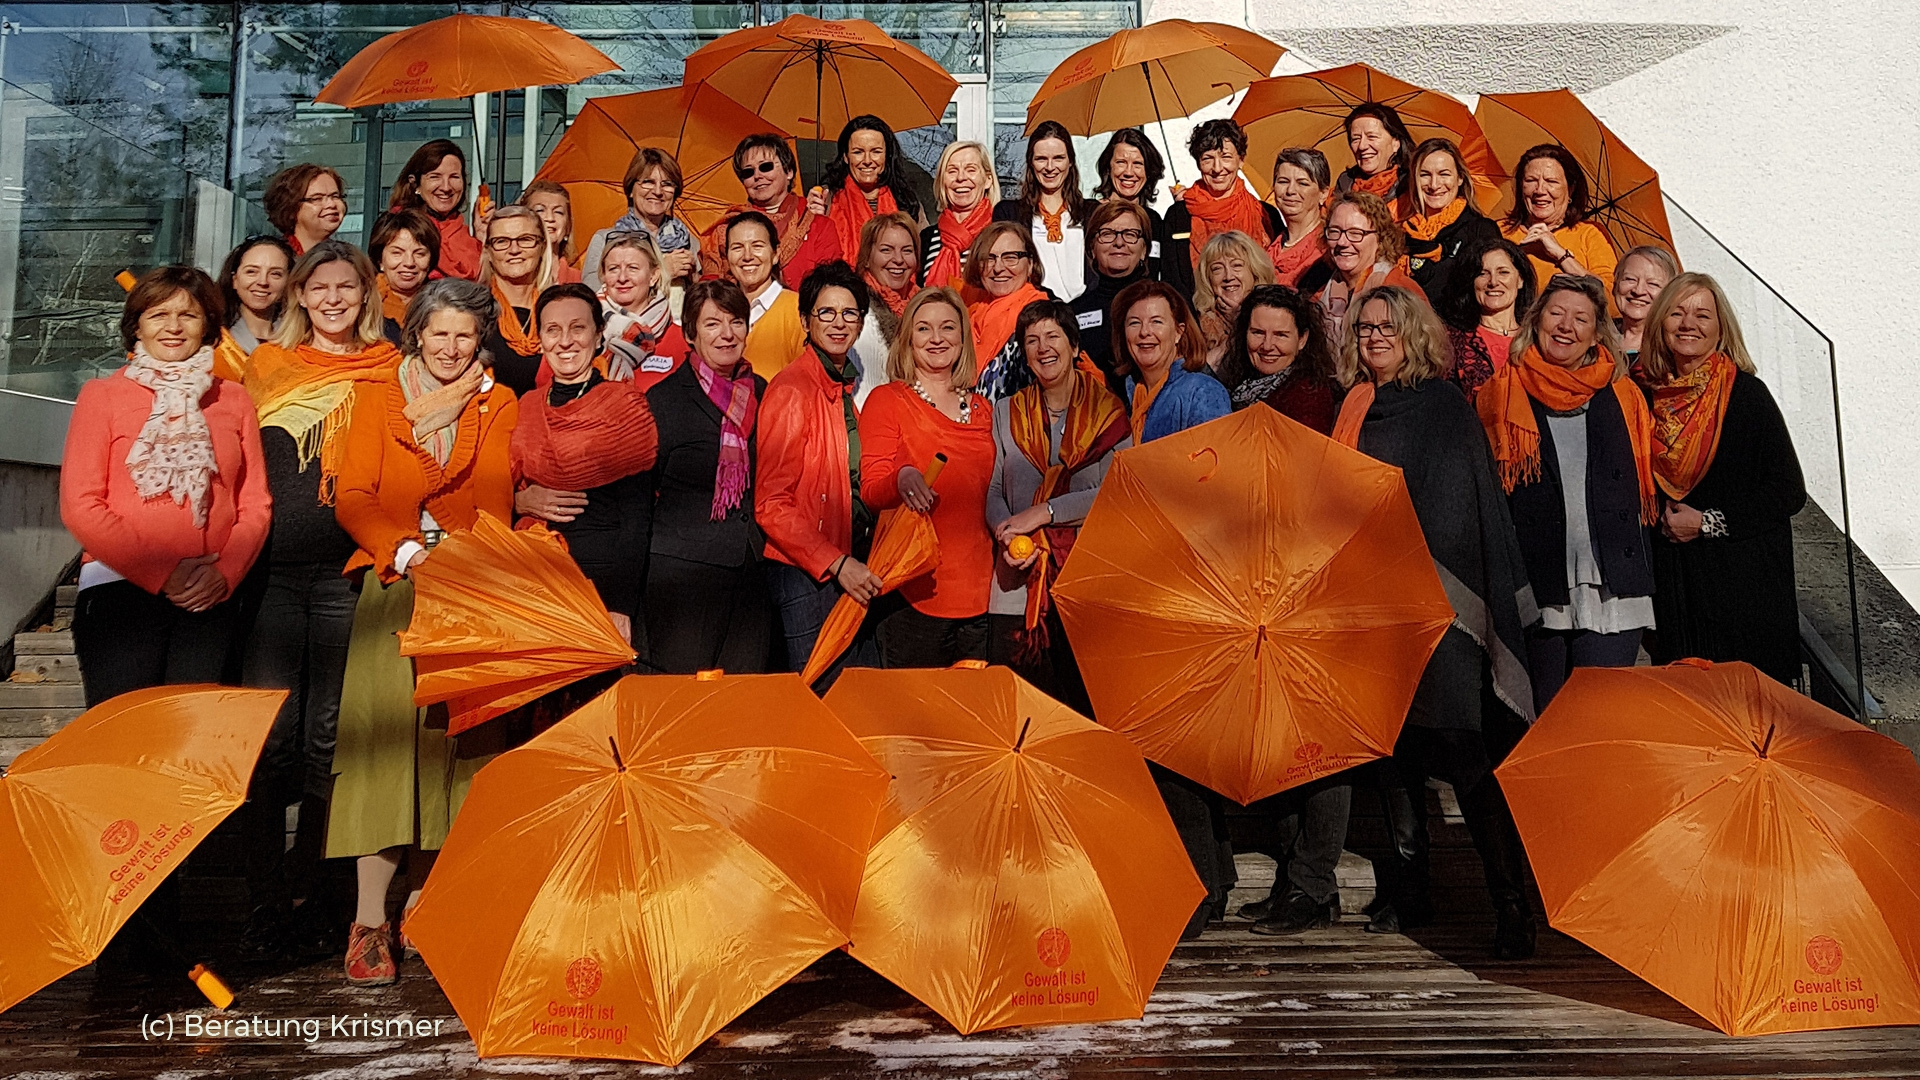 Die Teilnehmerinnen in 'Orange the World'-Mission - (c) beratung krismer